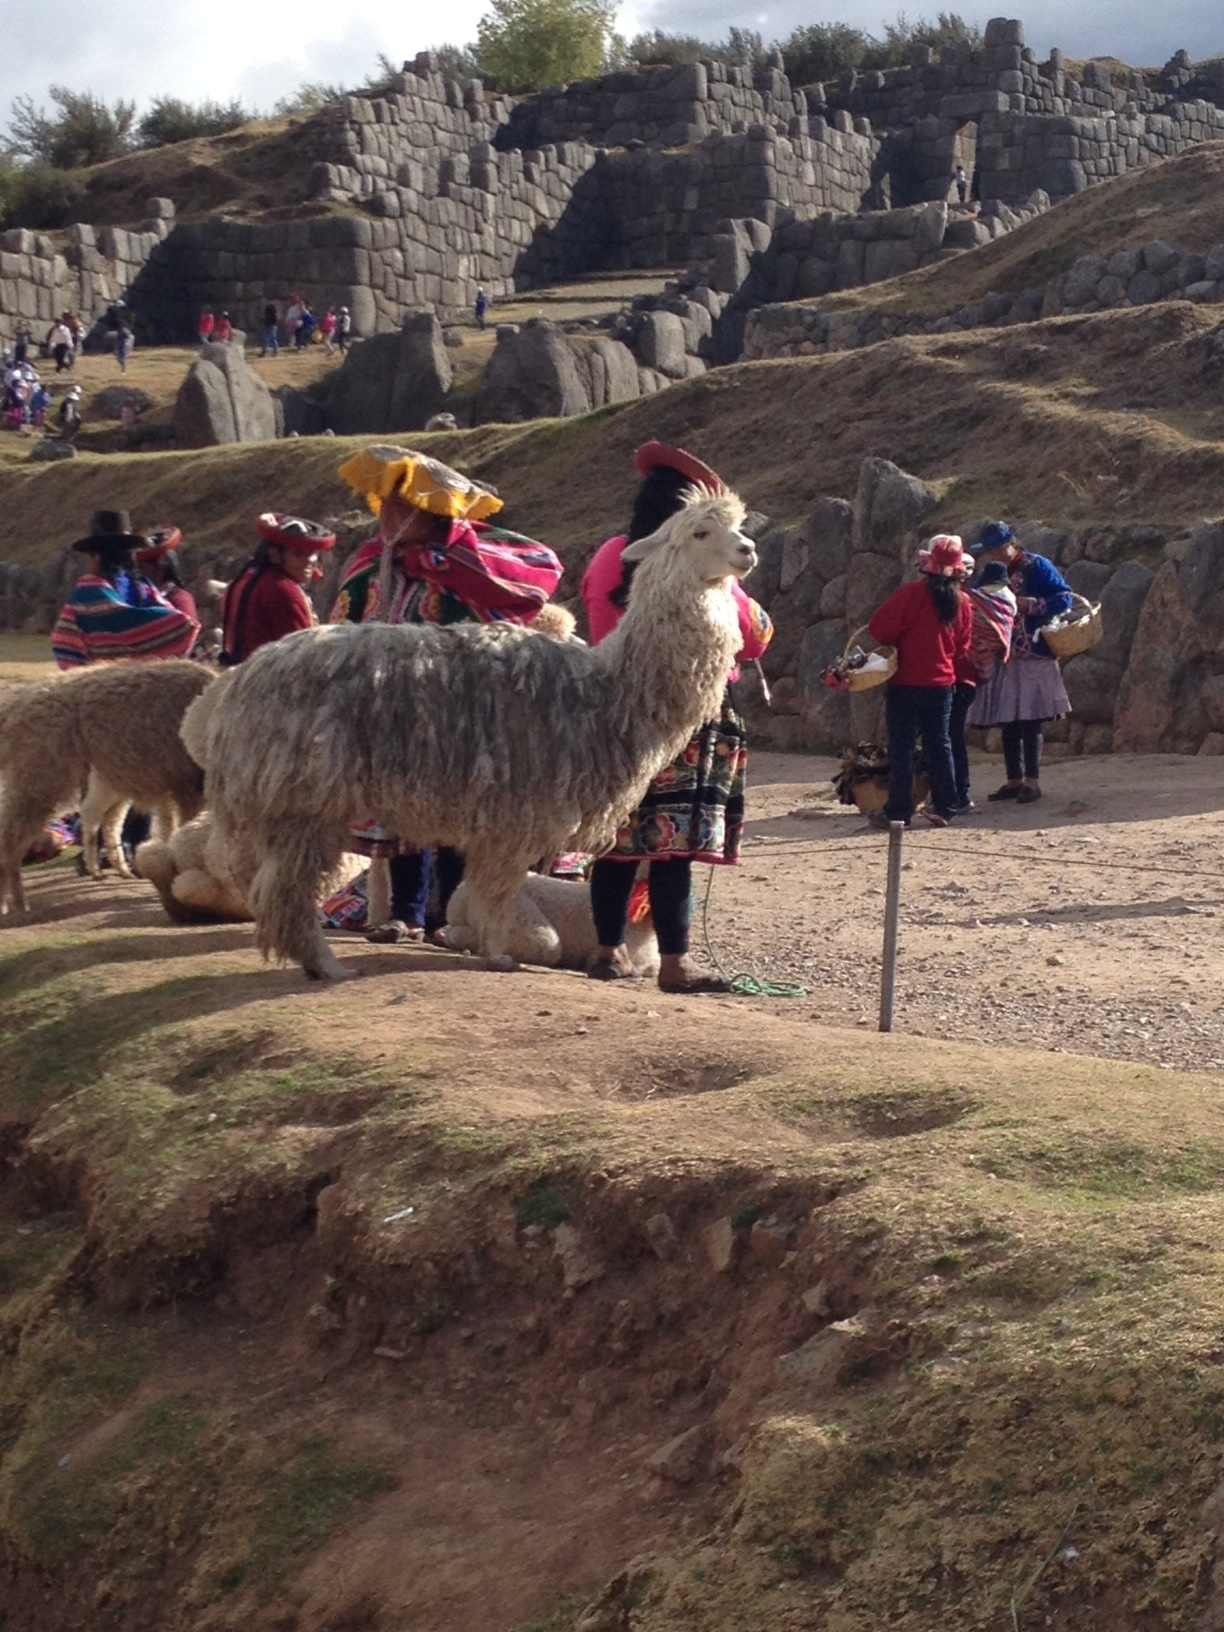 A bid farewell from an alpaca-mostly locals at the exit trying to get more money from tourists